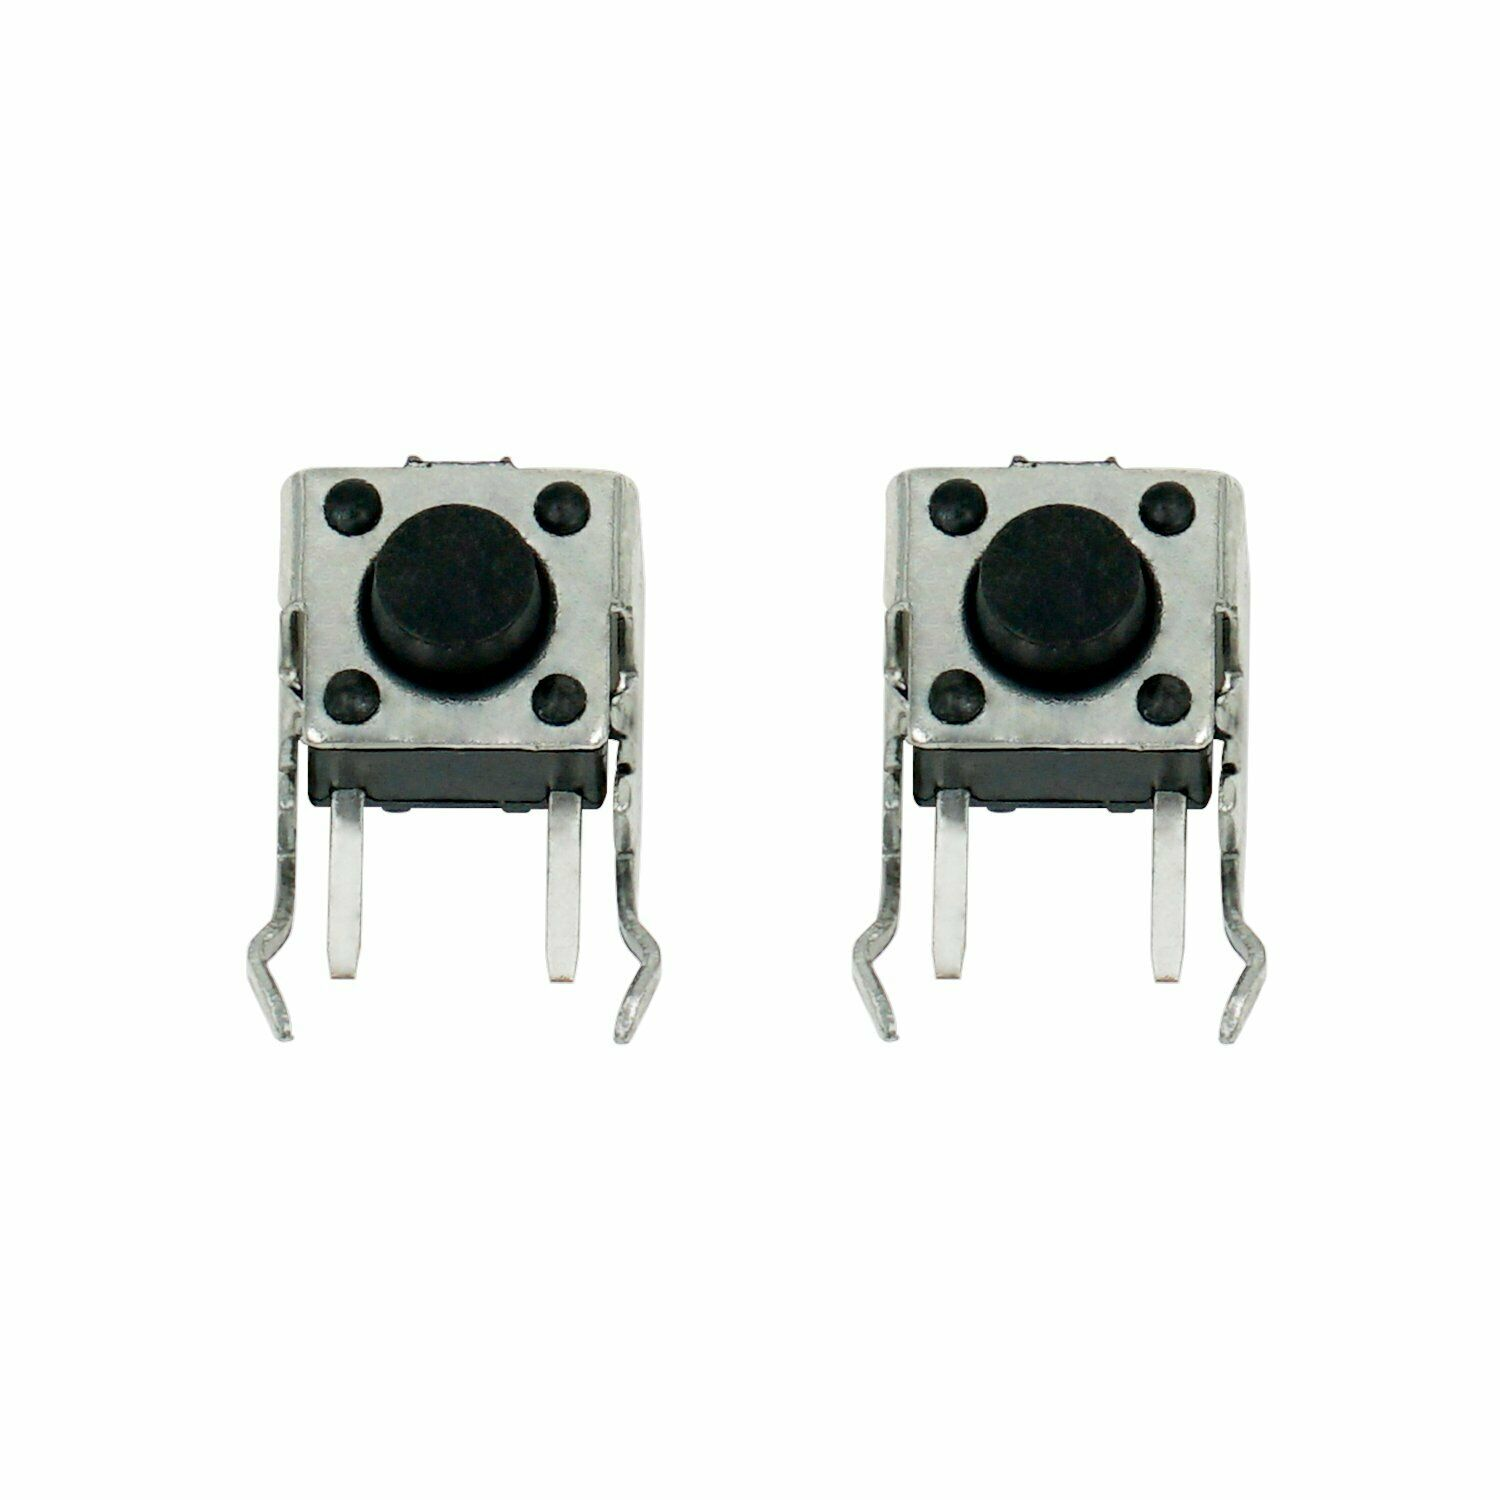 2 x RB/LB Tactile Switch Bumper Button for Xbox One Slim Controller Replacement